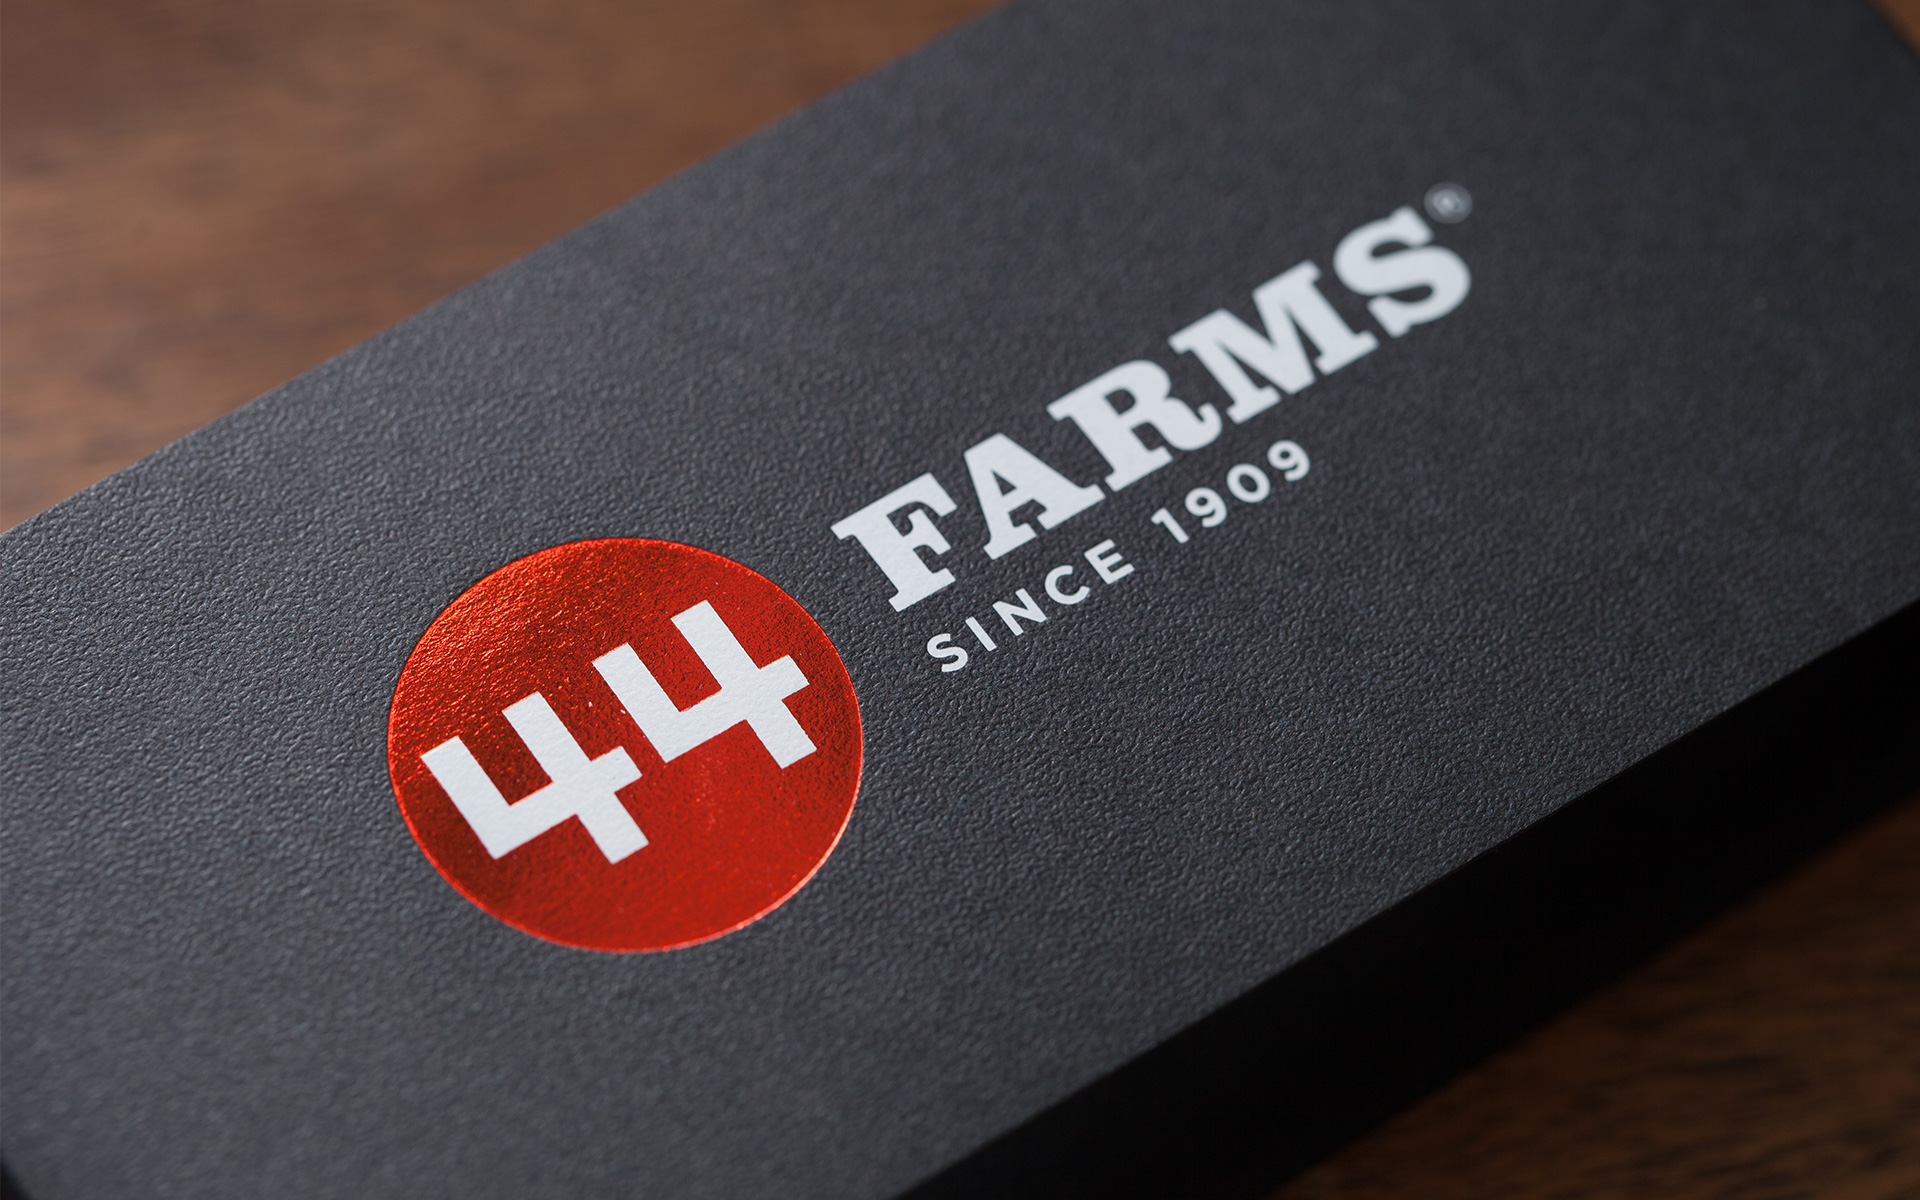 44 Farms Packaging